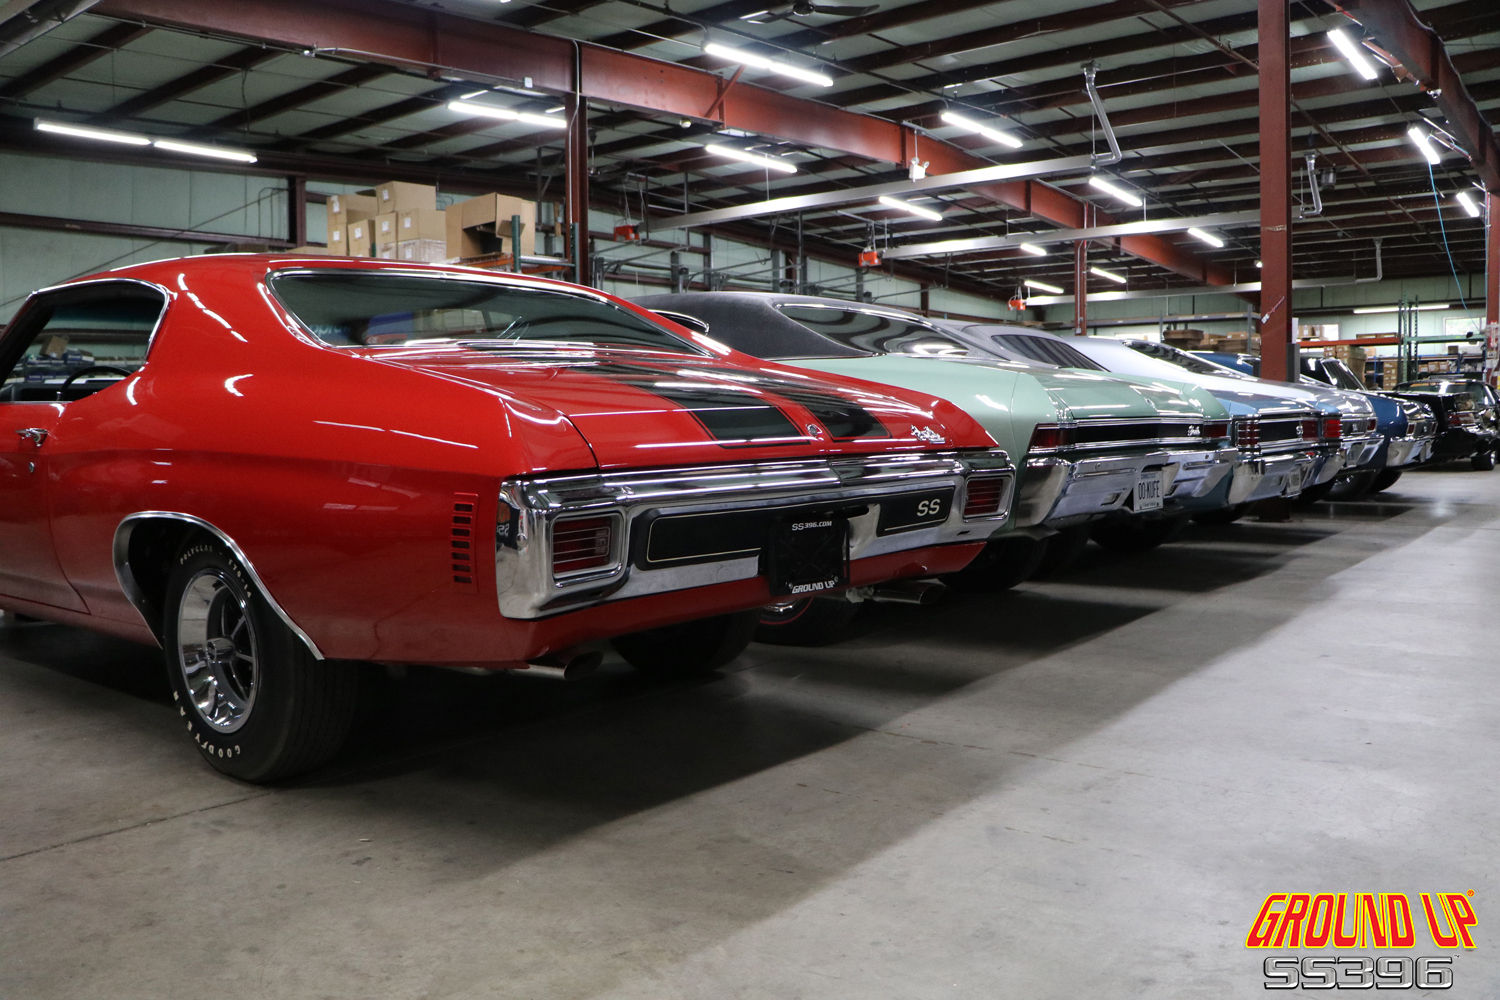 2019 Ground Up Vendor Expo - Muscle Car Taillights